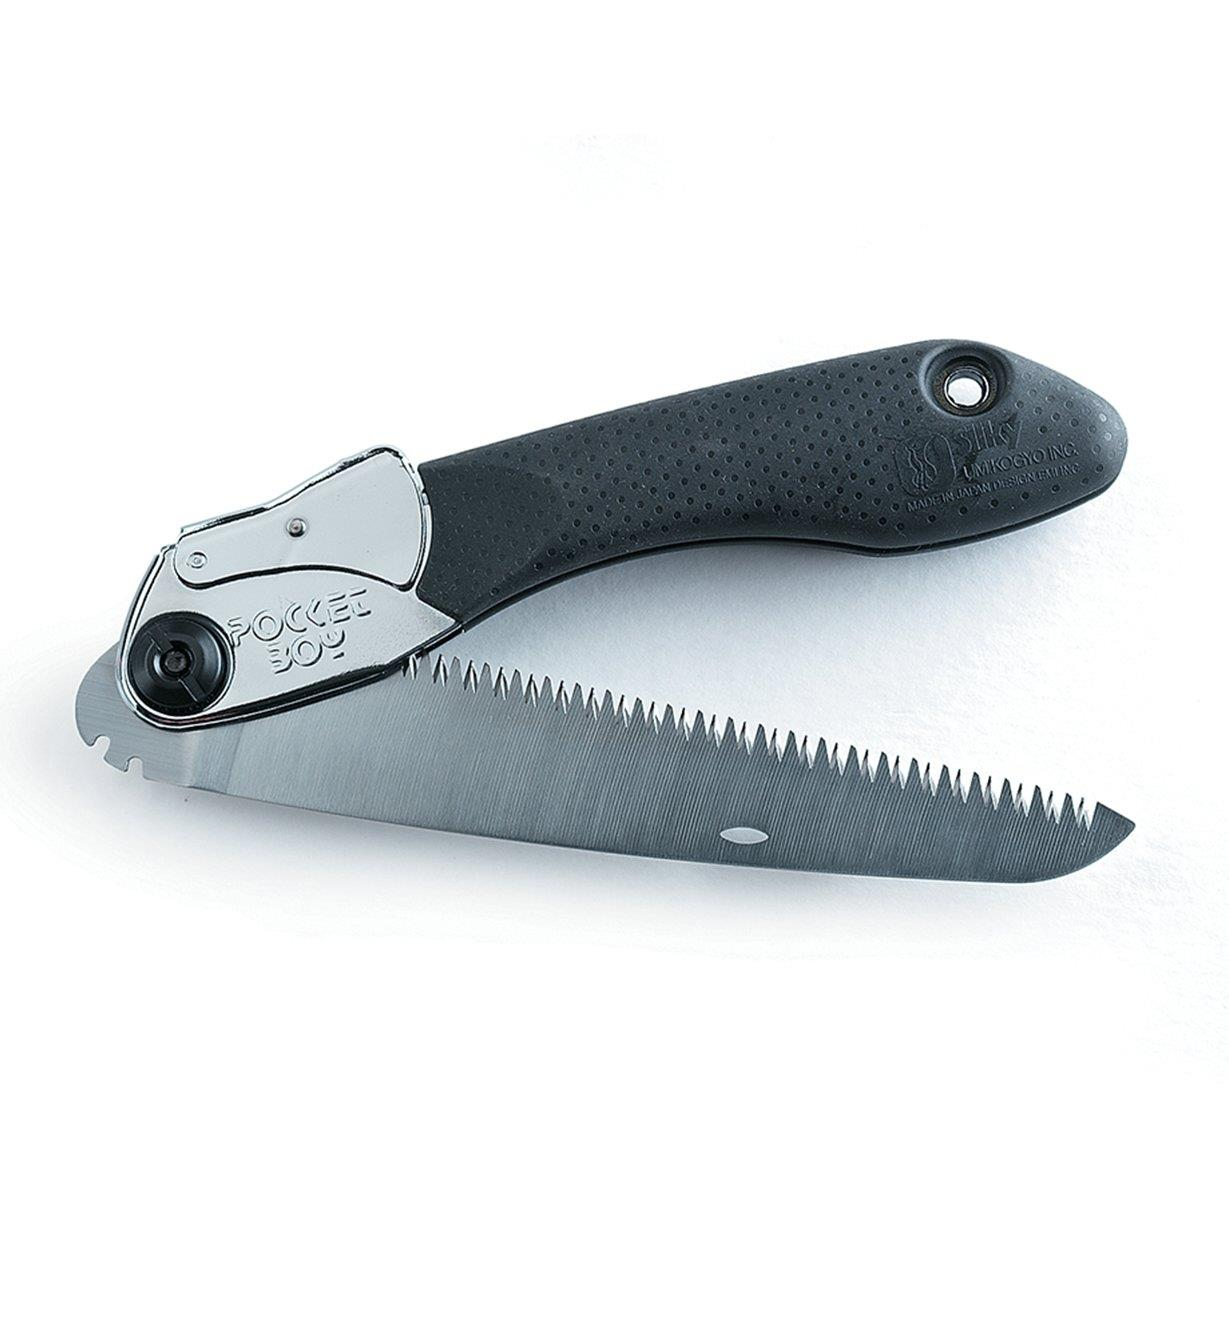 Silky Pocketboy 170M Folding Saw